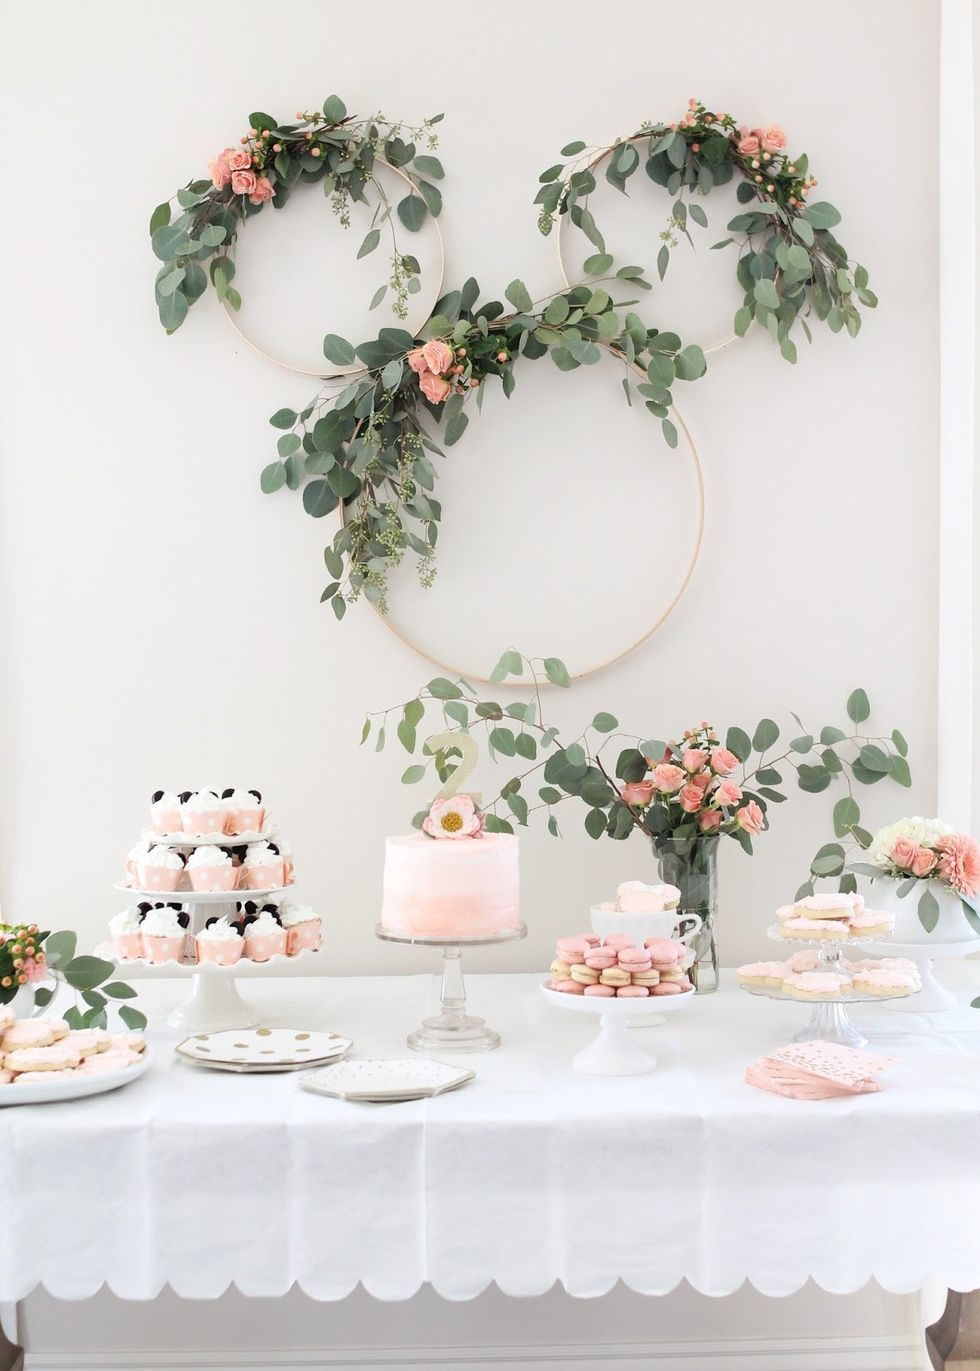 44 Baby Shower Ideas for Boys and Girls , Baby Shower Food